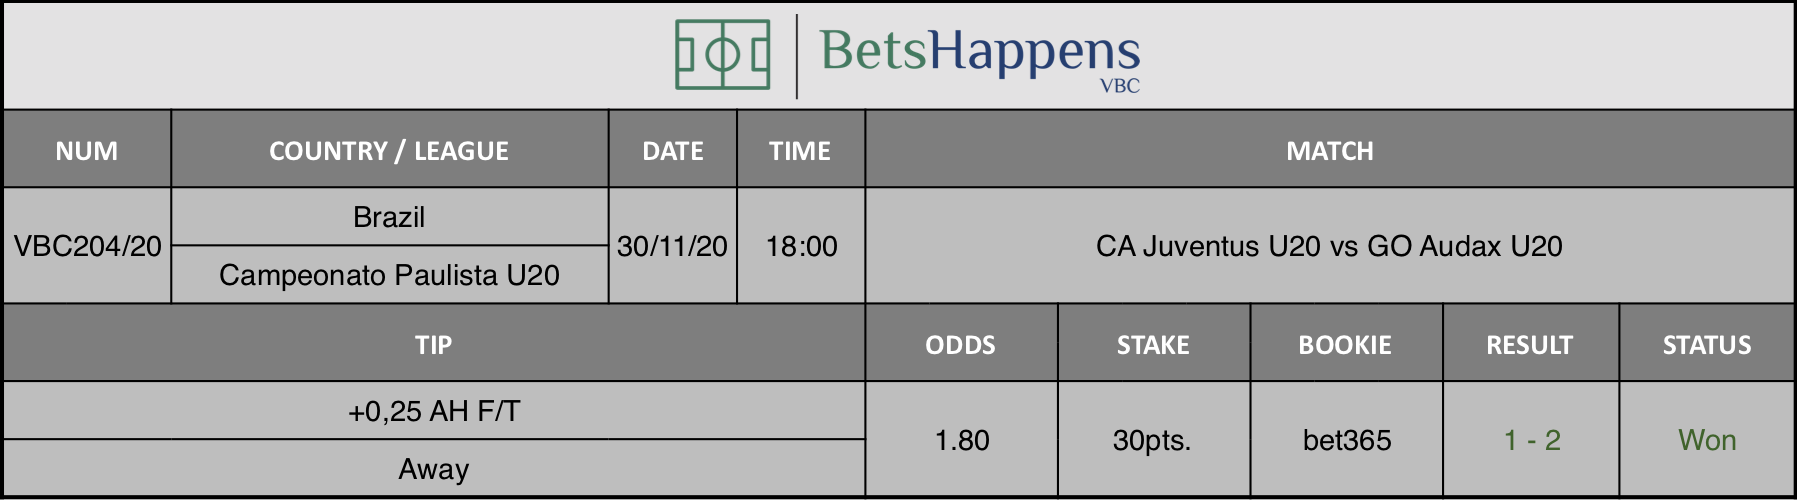 Results of our tip for the CA Juventus U20 vs GO Audax U20 match where +0,25 AH F/T Away is recommended.